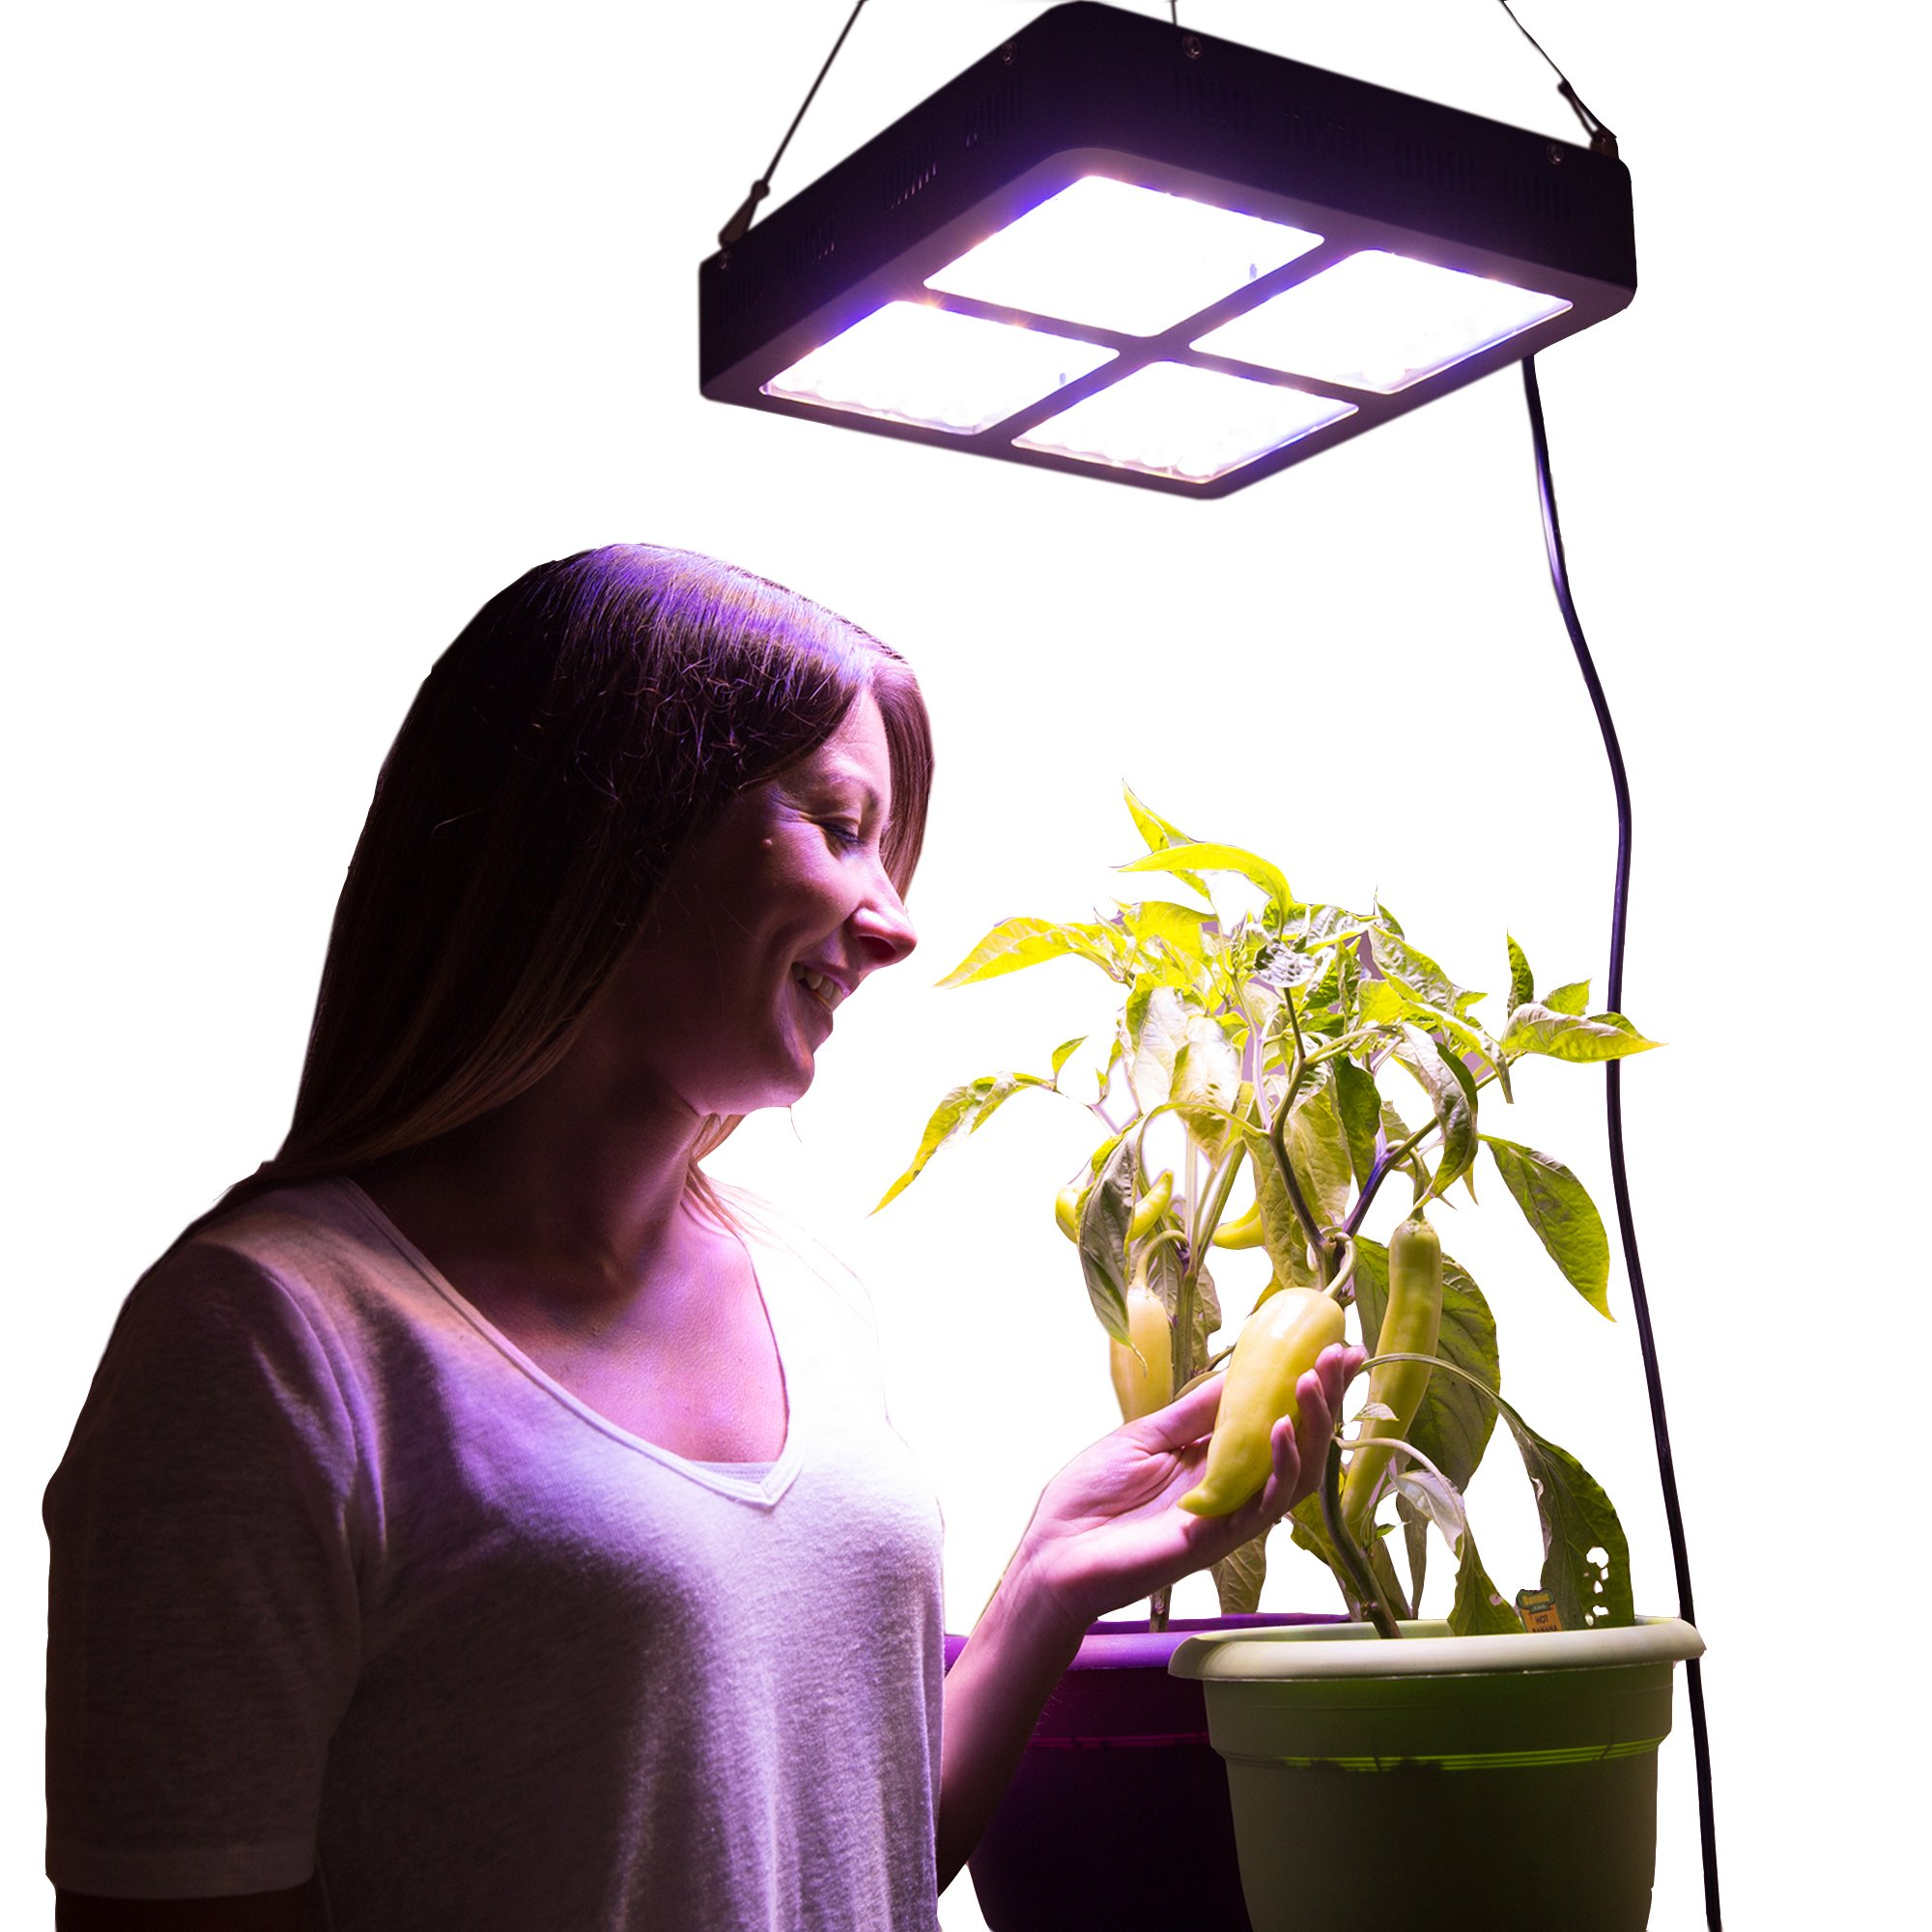 Induxpert 600W LED Light For Plant Growth - Full Spectrum LED for Indoor Plants, Veg, Flowers - Includes Hanging Chain - For Greenhouse, Horticulture, Hydroponics - Powerful Flowering Grower's Light